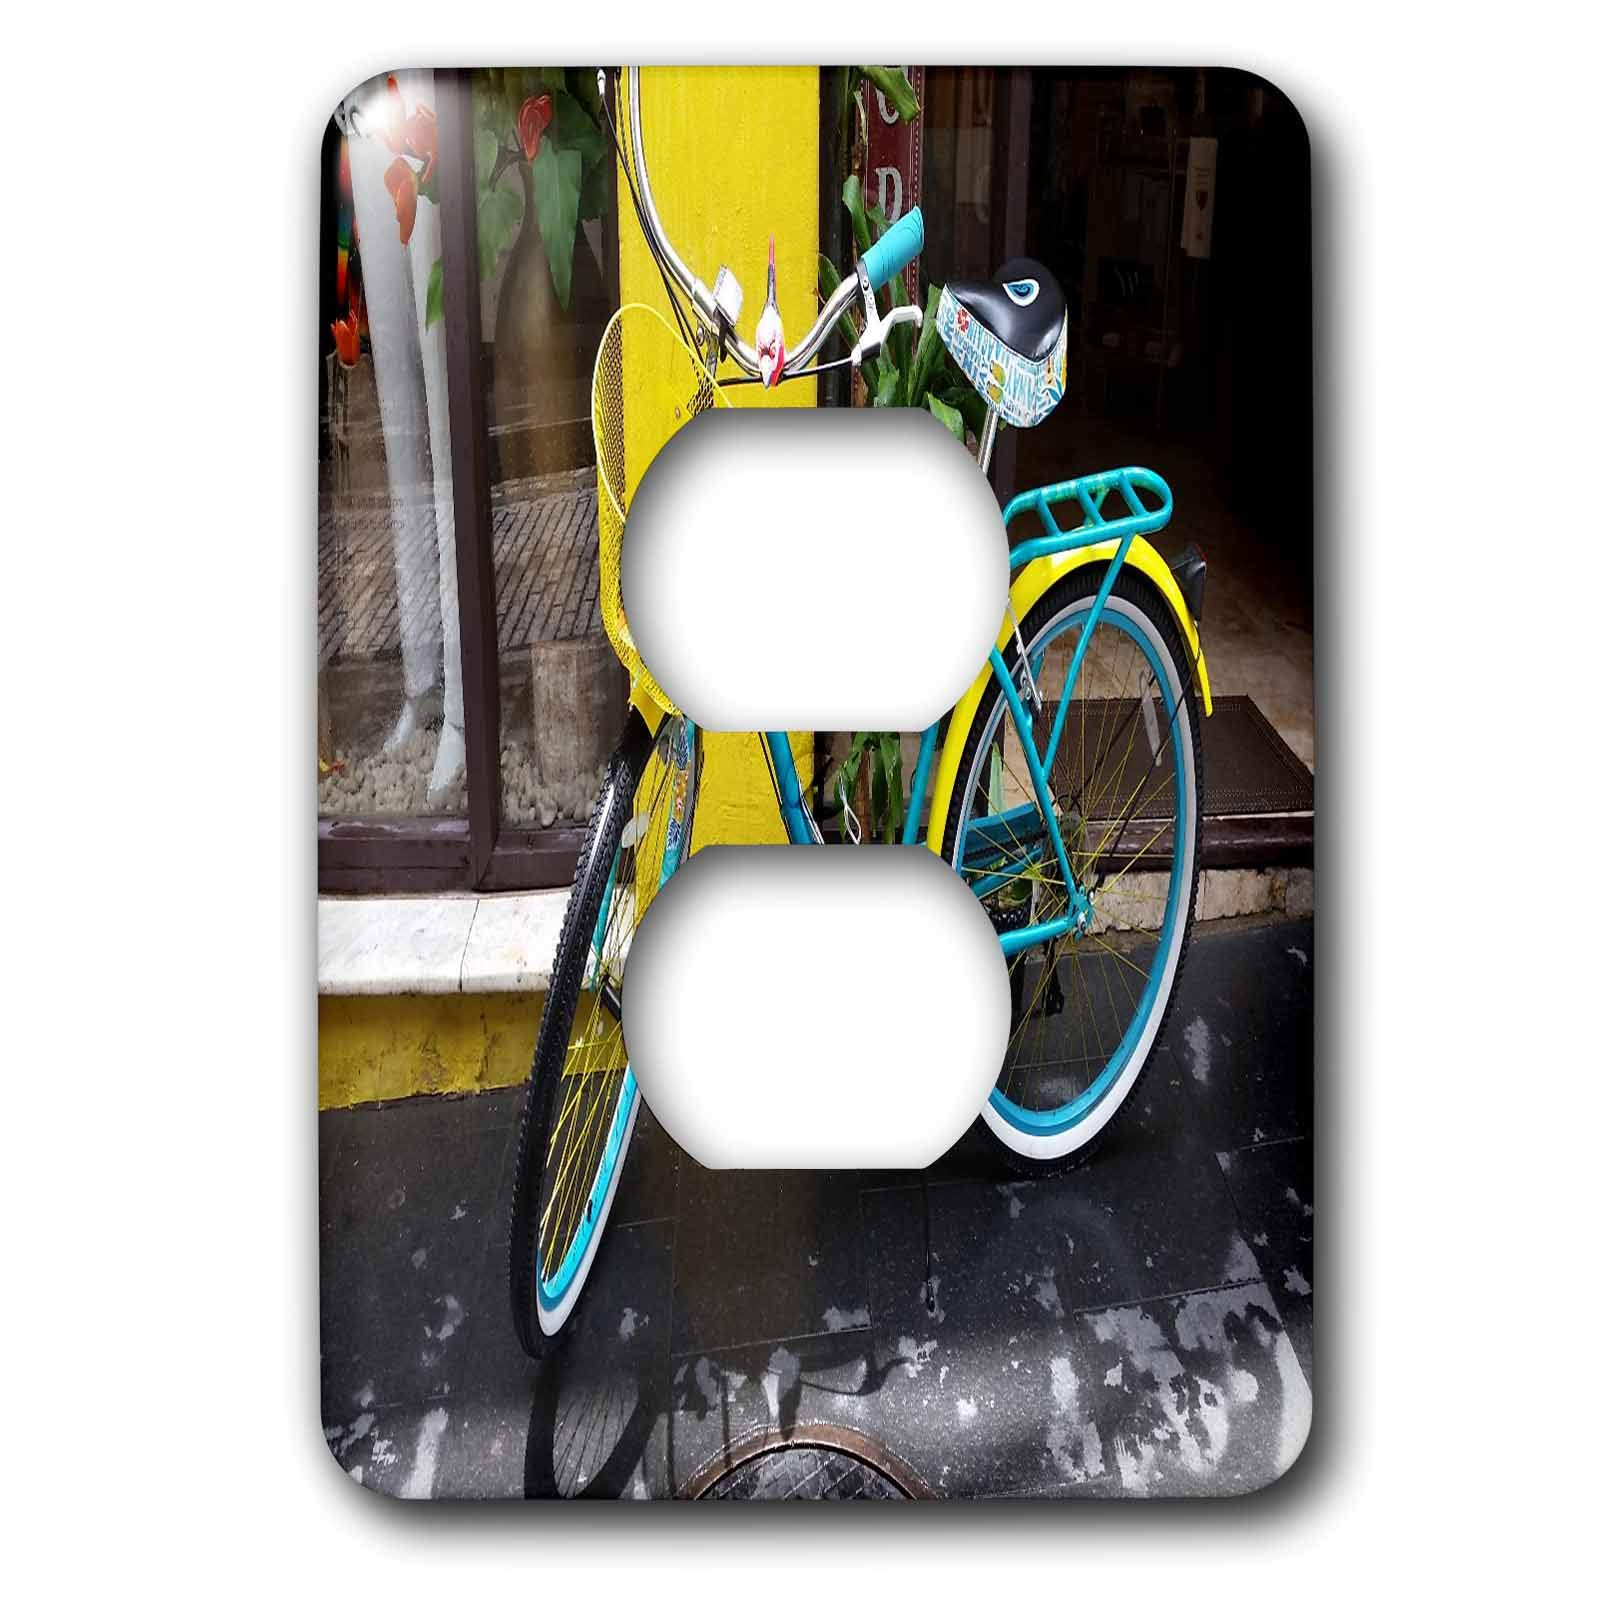 3dRose Lens Art by Florene - Cruise Ship Sites - Image of A Colorful Bicycle Downtown San Juan - Light Switch Covers - 2 plug outlet cover (lsp_290967_6)